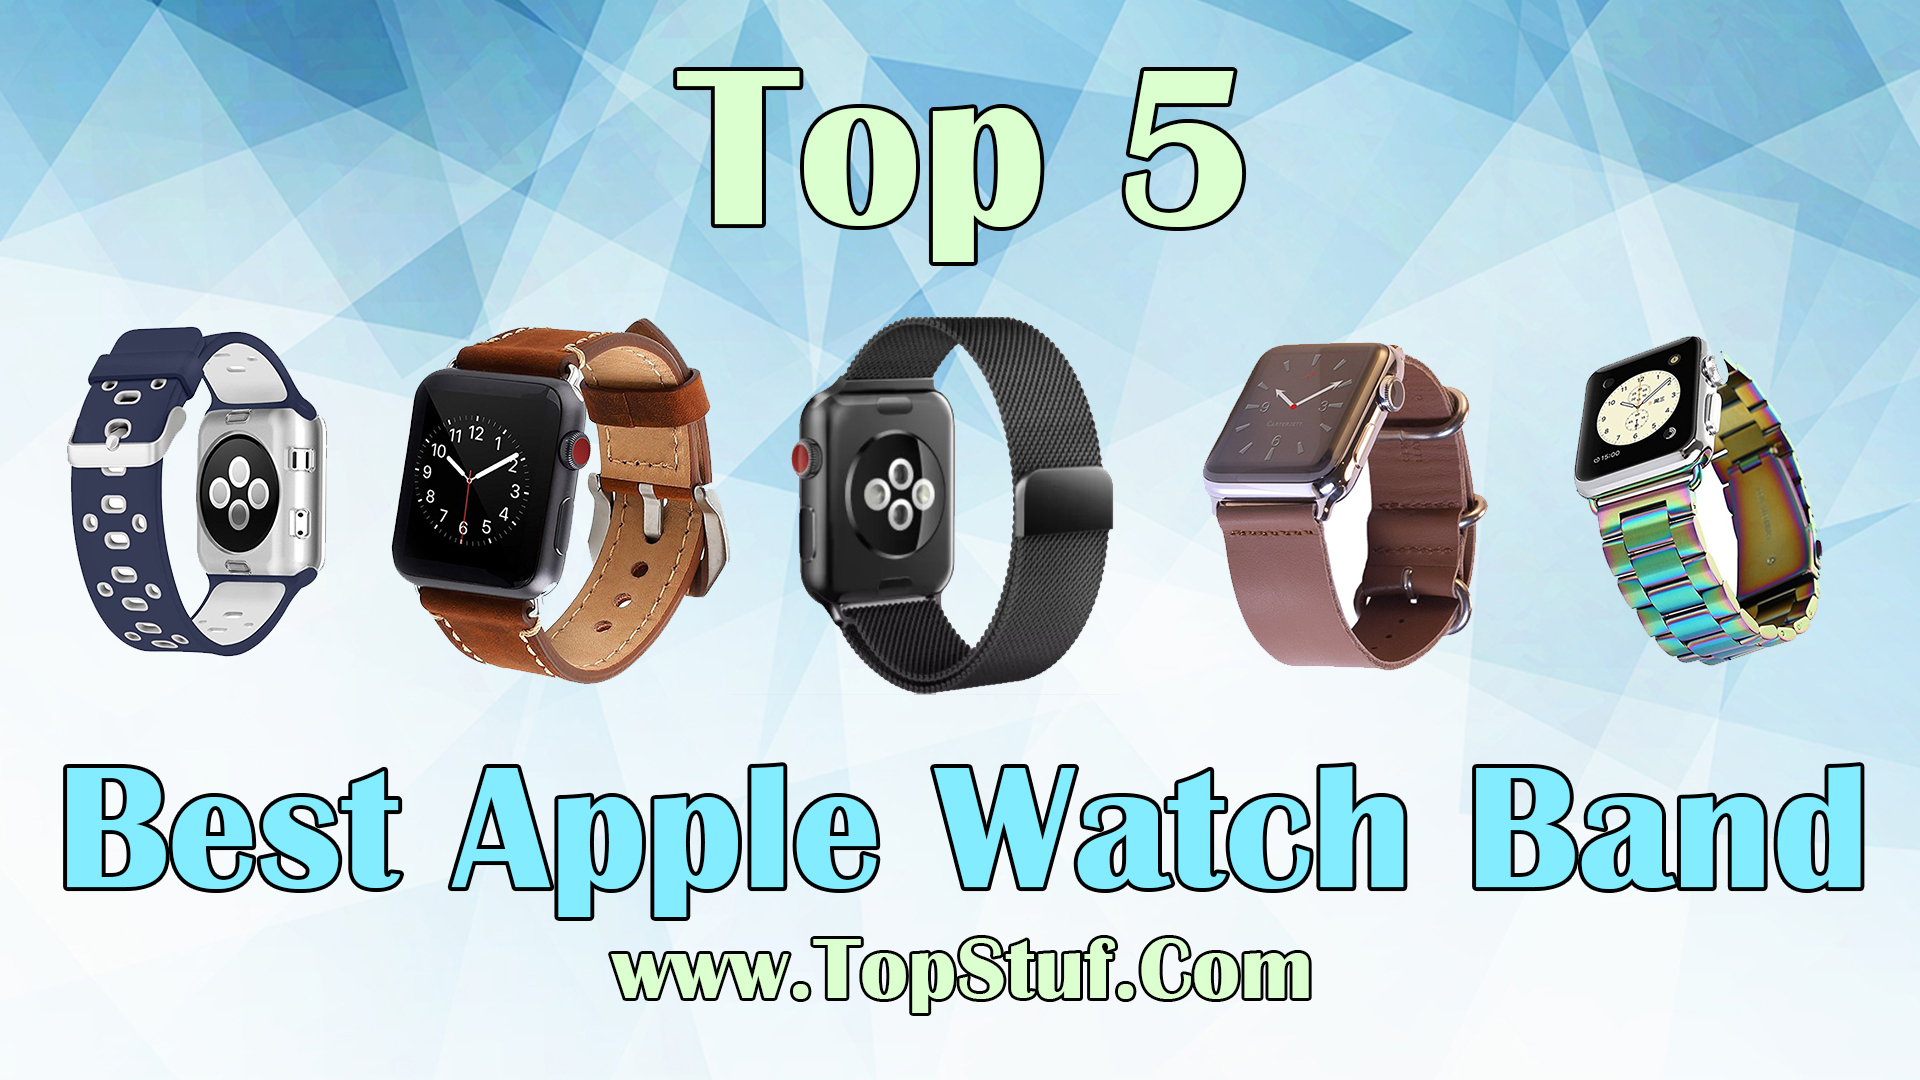 Top 5 Best Apple Watch Band